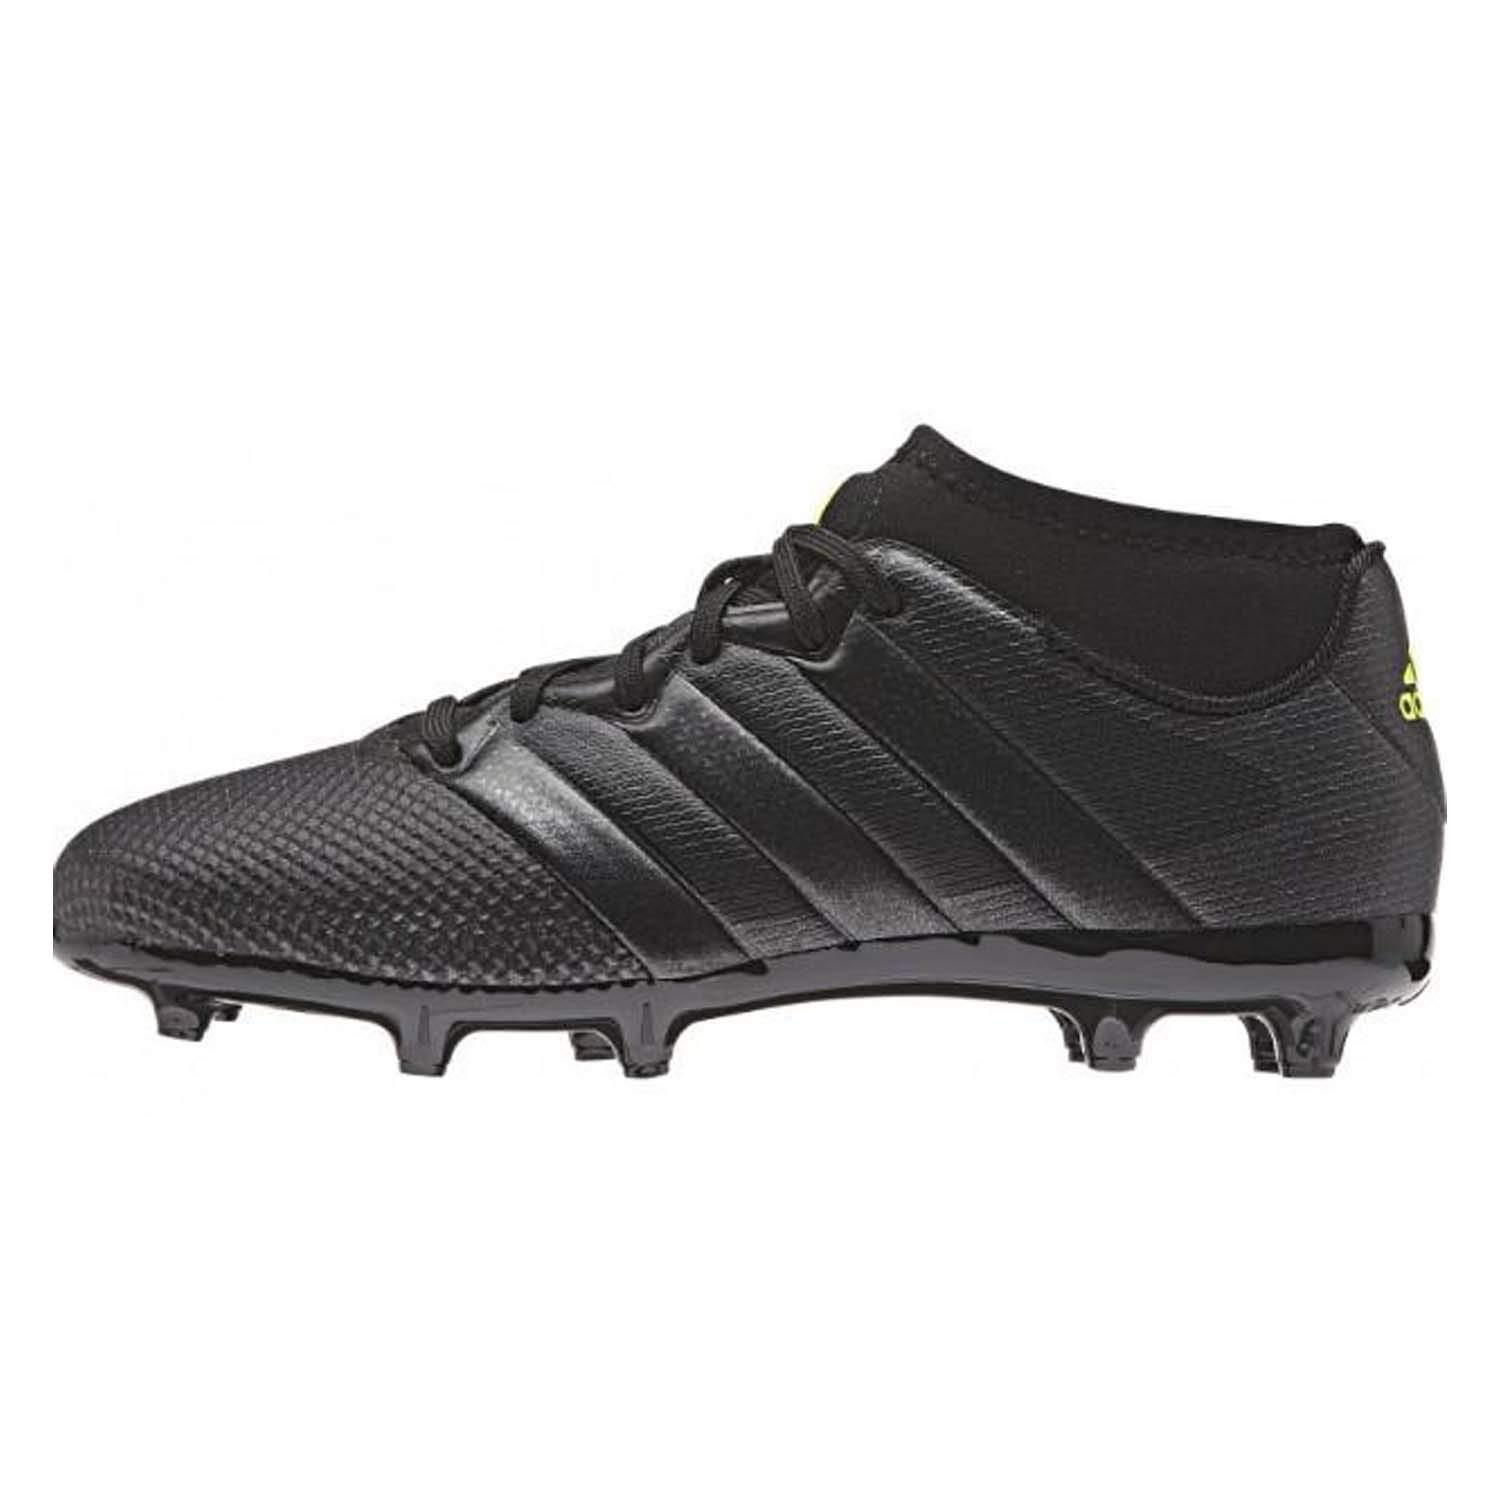 Adidas Performance Ace 16.3 Primemesh FG/AG J Soccer Cleat (Little Kid/Big Kid)